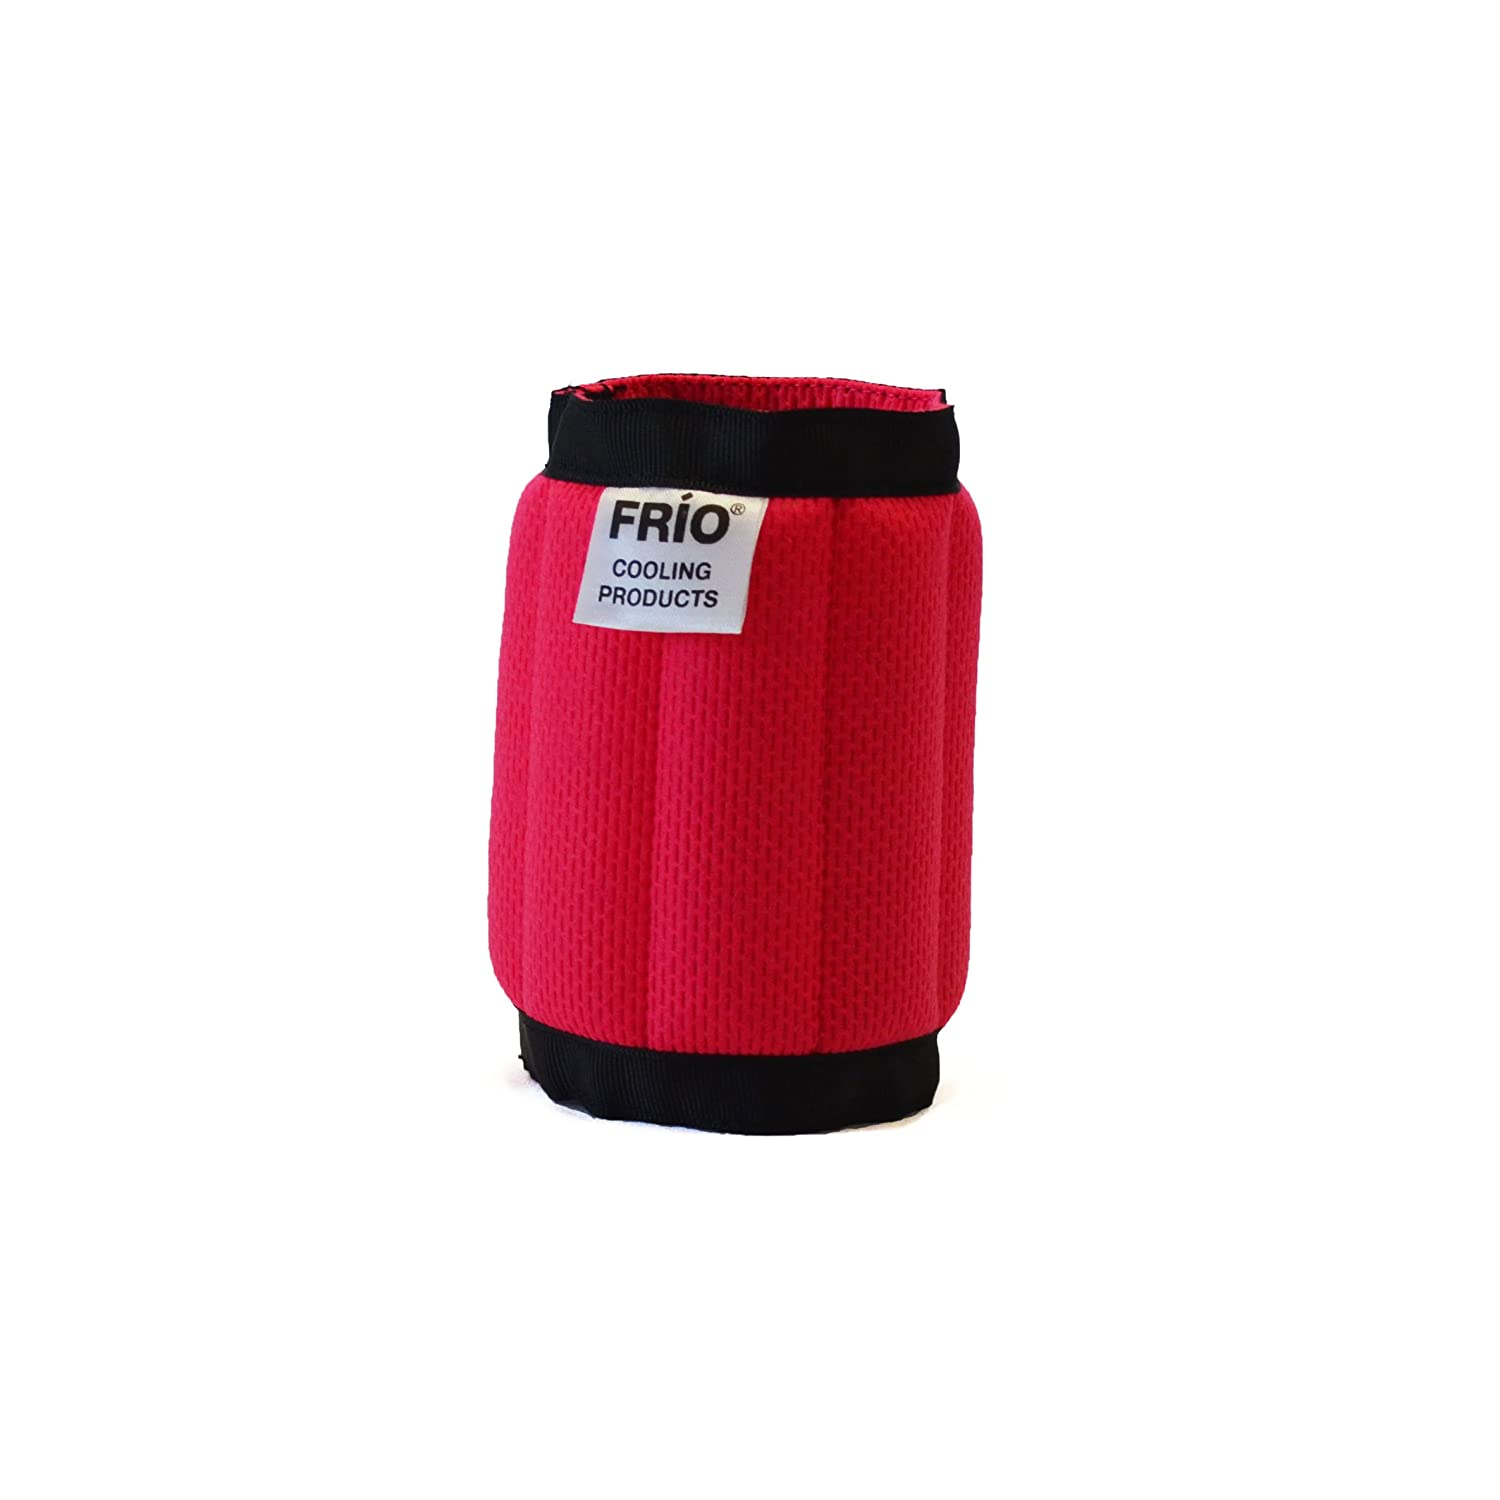 Black with Red Trim Soak in Water No need for Refrigeration FRIO Drinks Cooler